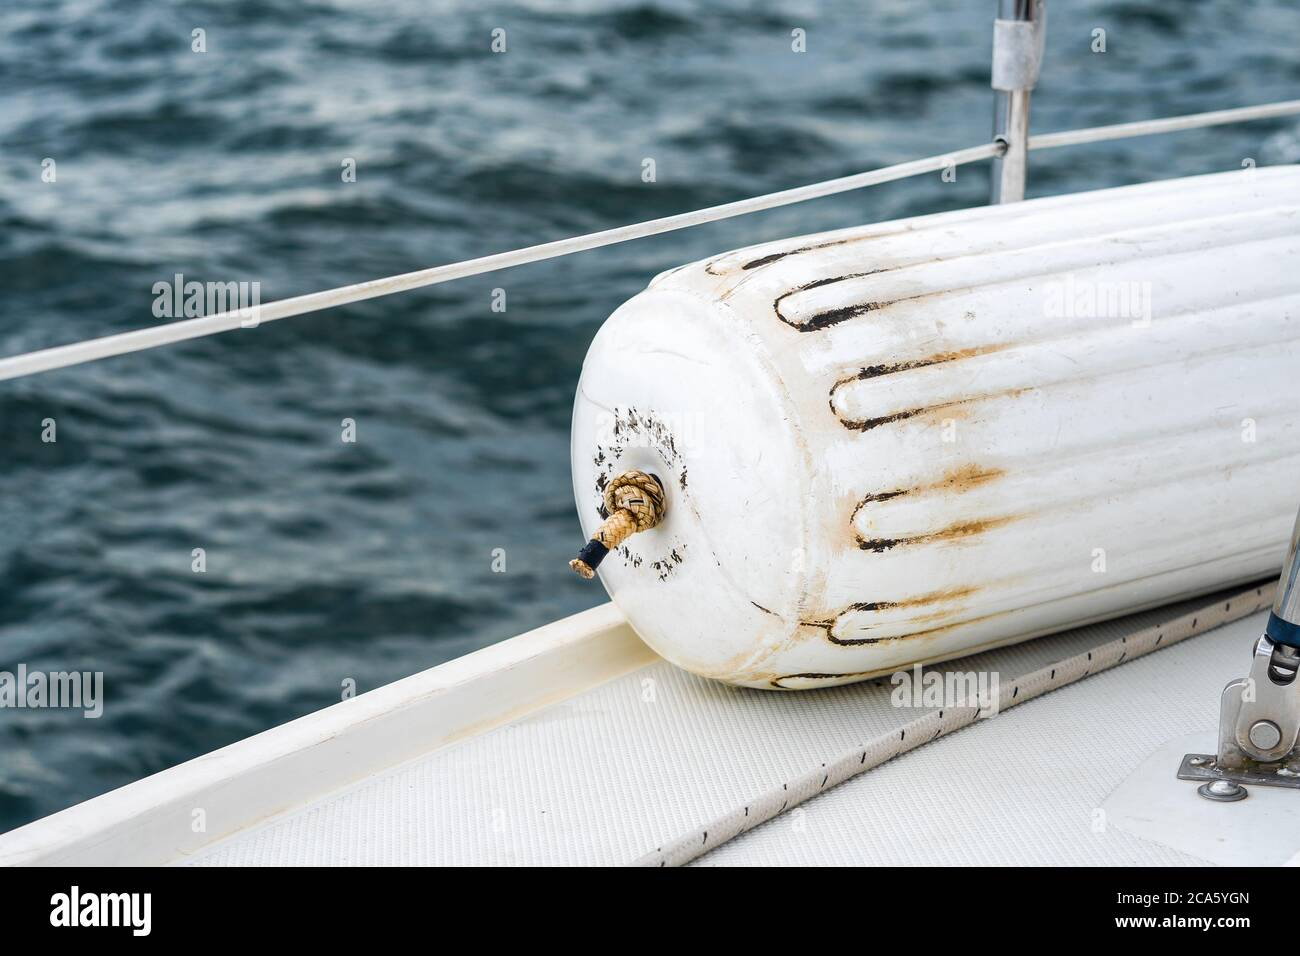 A detailed image of a boat fender on a sailboat with blue water in the Great Lakes. Stock Photo